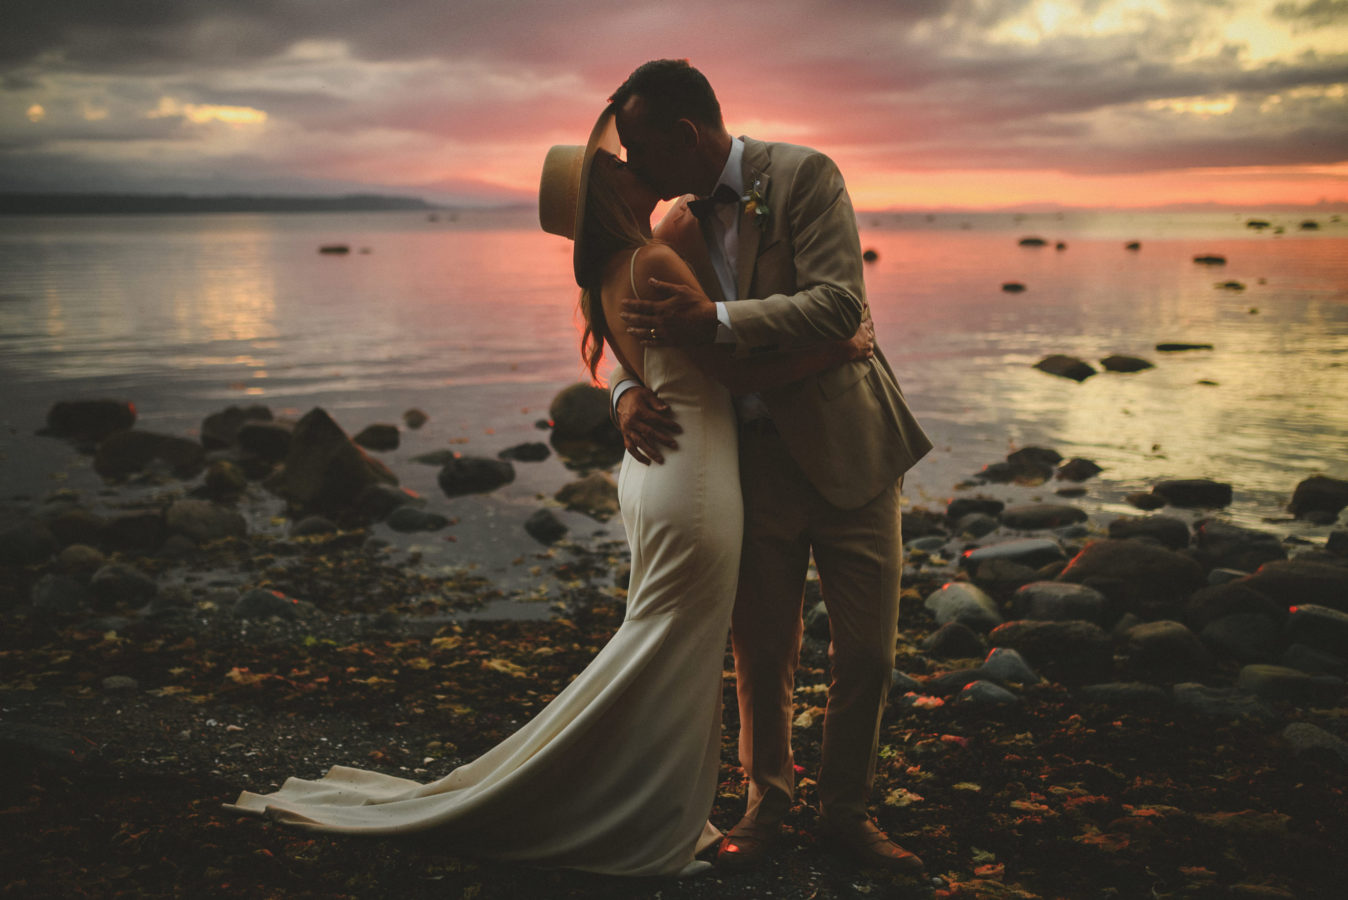 bride and groom kissing in a deep embrace on the edge of a rocky beach at sunset